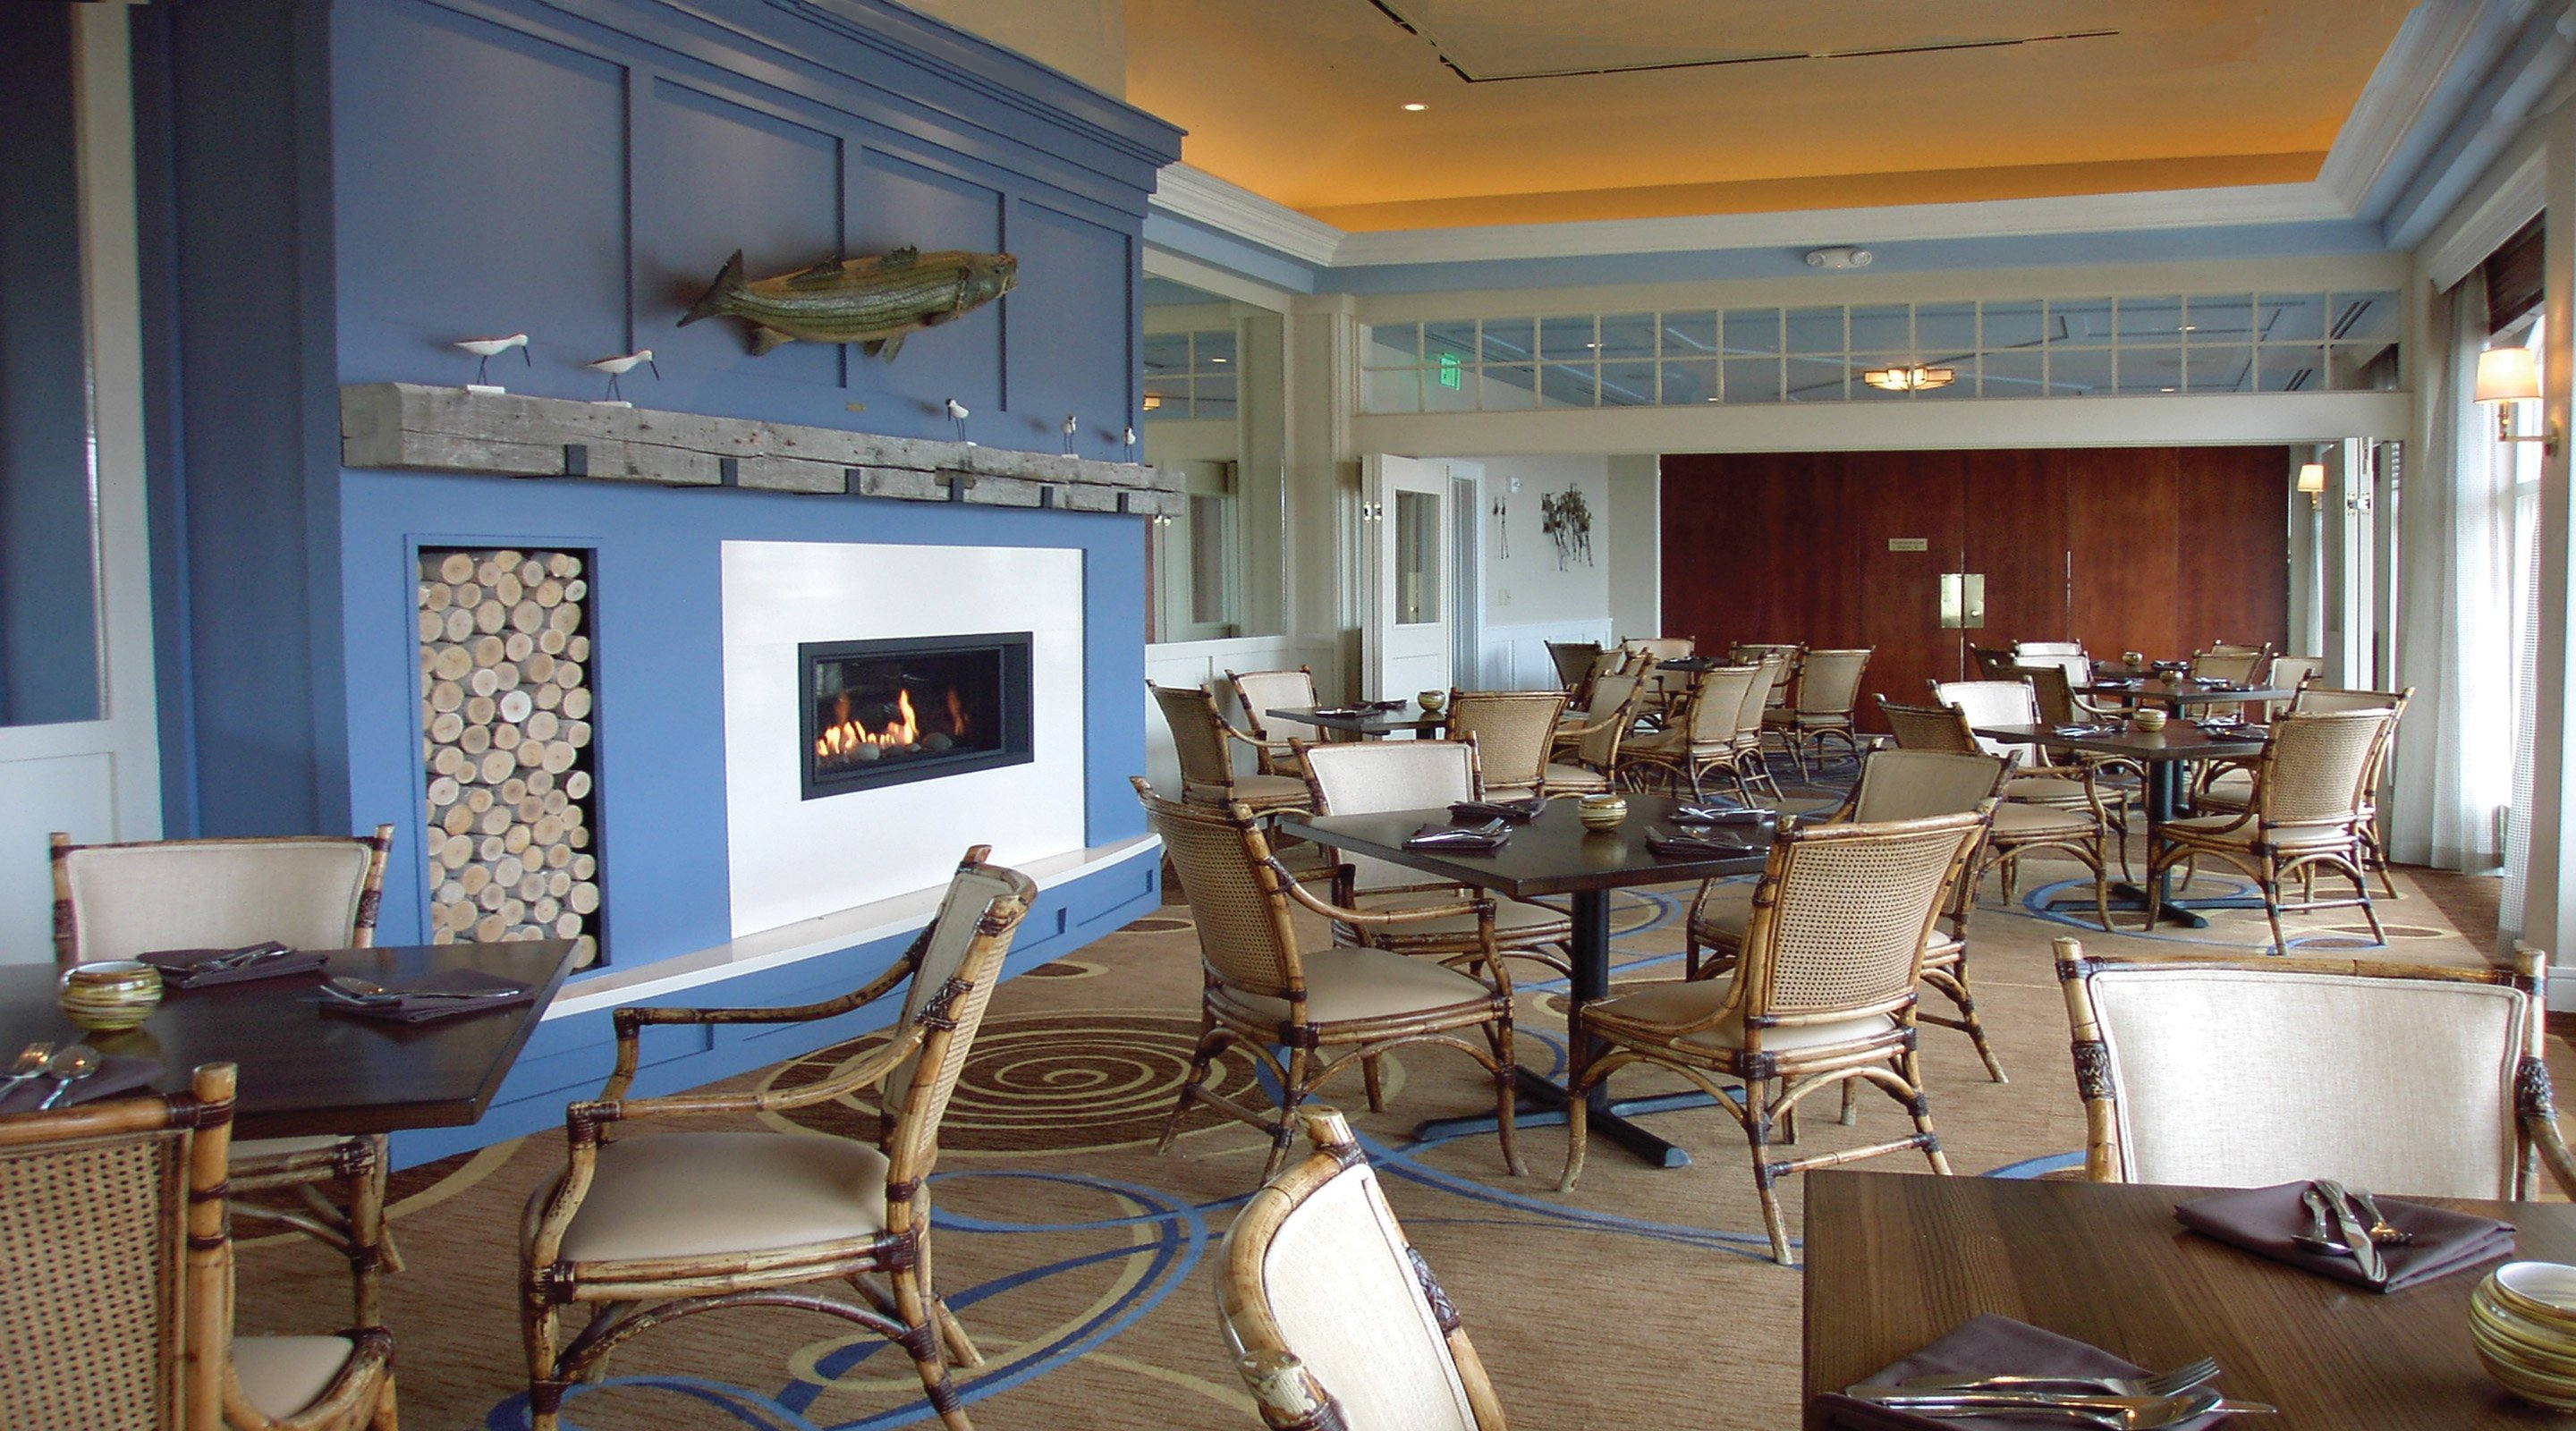 An overview of Sandpipers. It features a rustic New England gas fireplace.